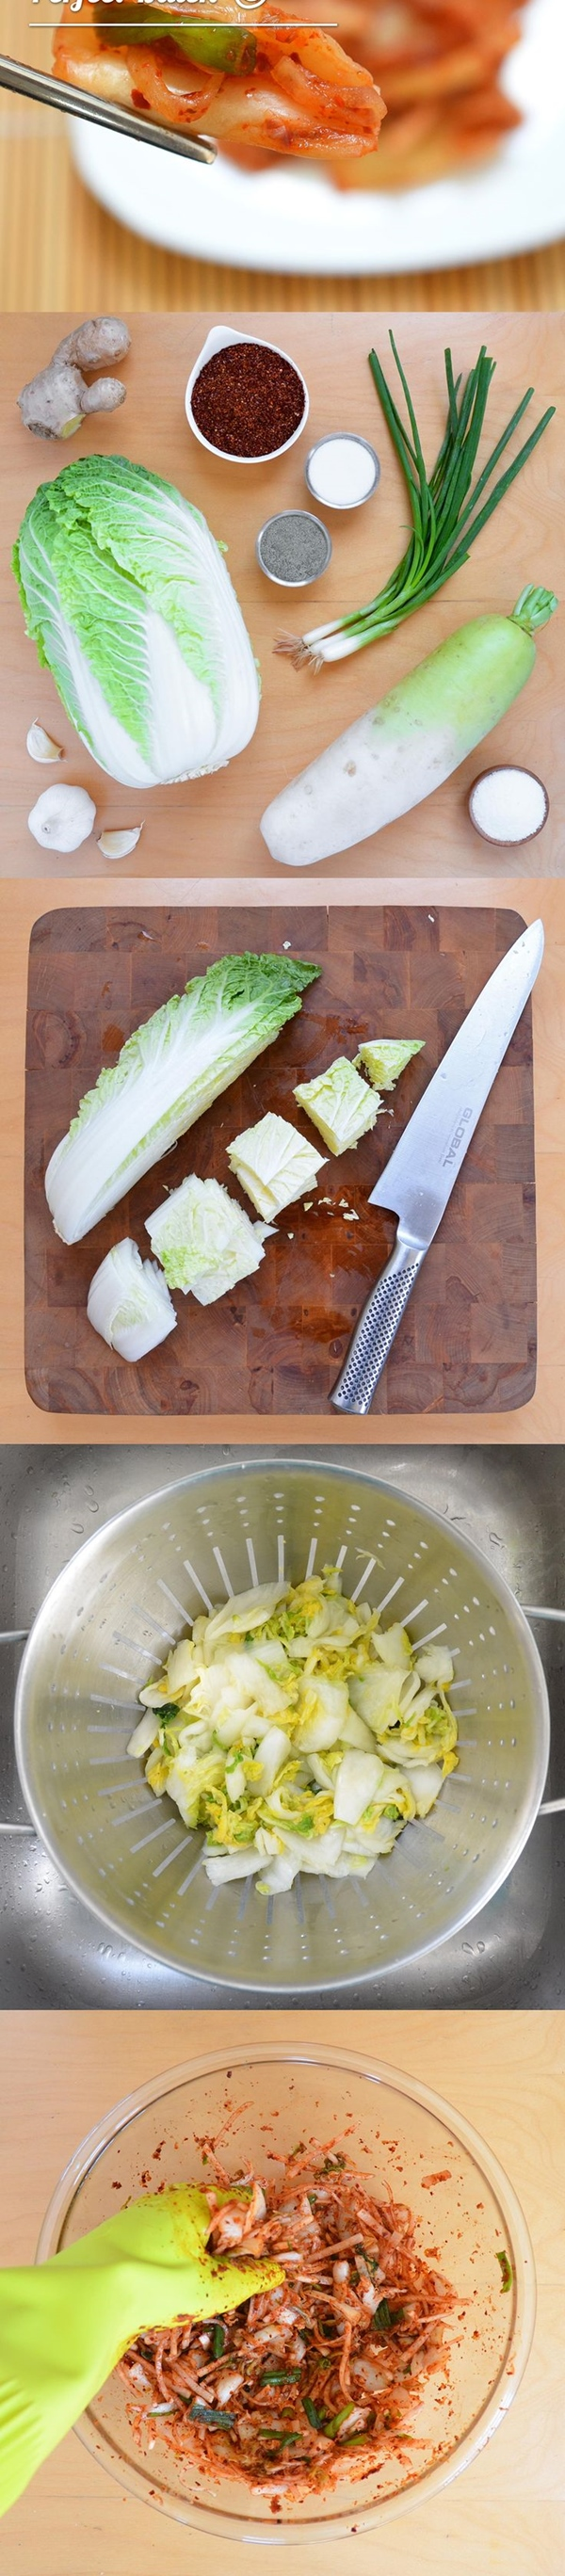 Easy-Food-Hacks-That-Will-Change-the-Way-You-Cook